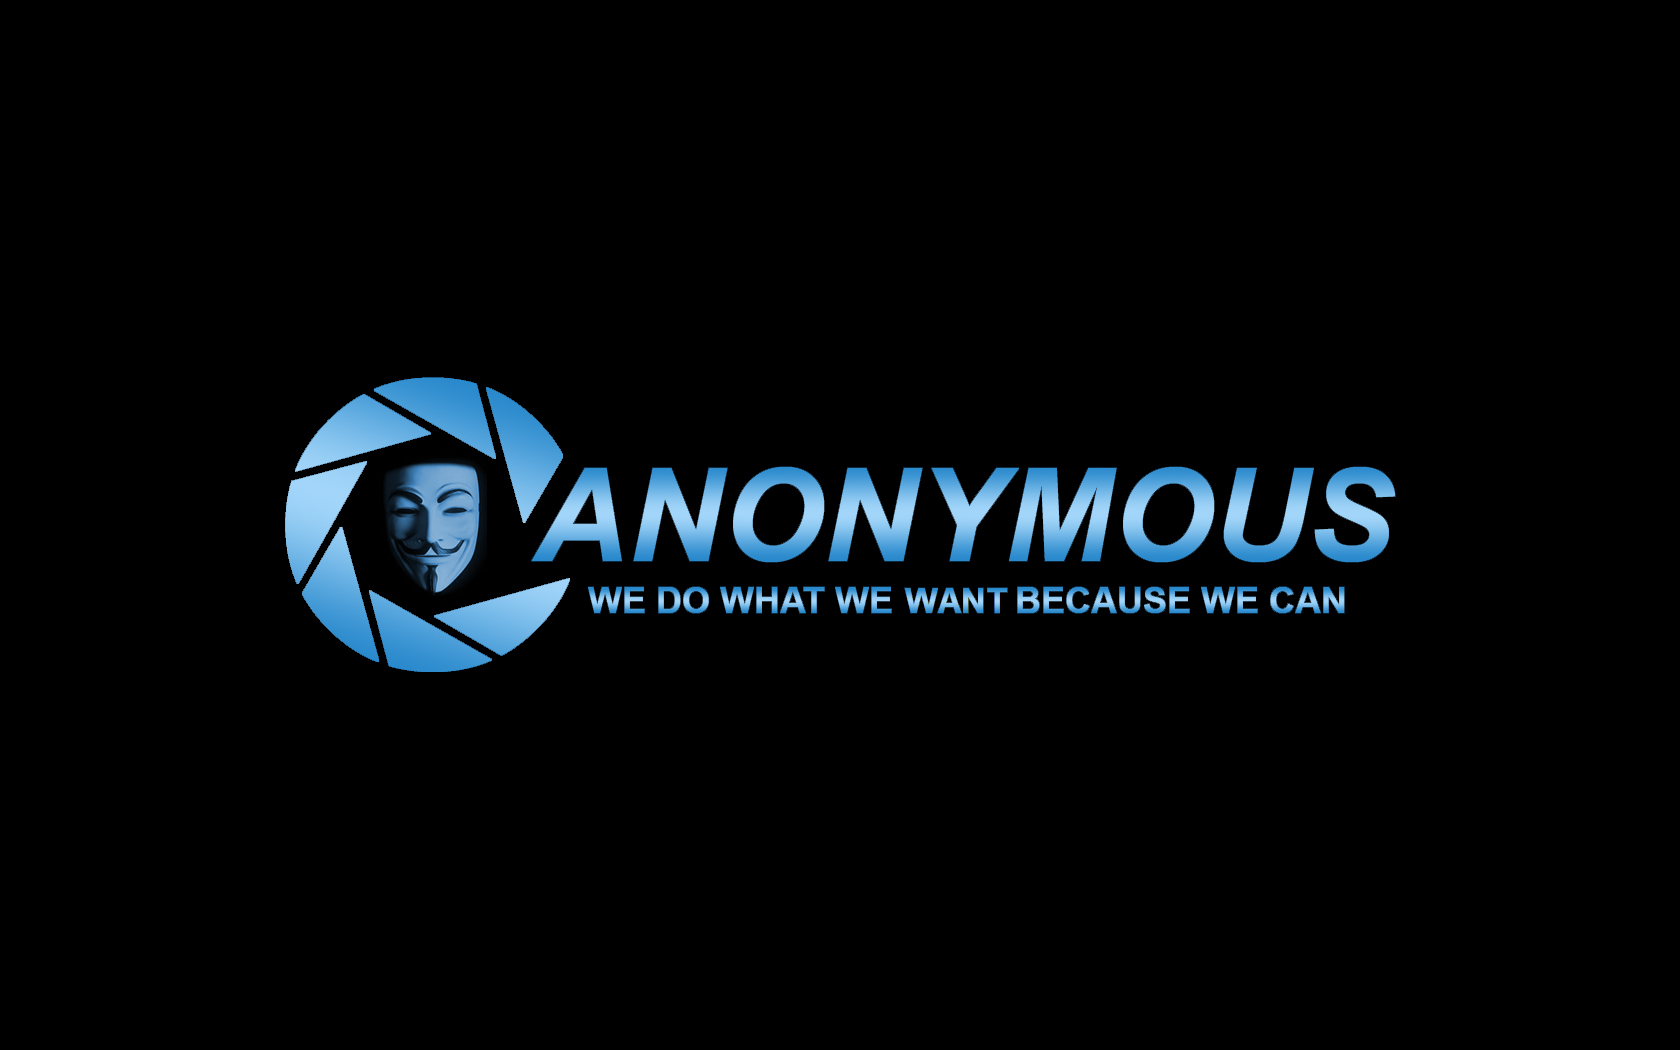 Description Anonymous Wallpaper 1080p is a hi res Wallpaper for pc 1680x1050